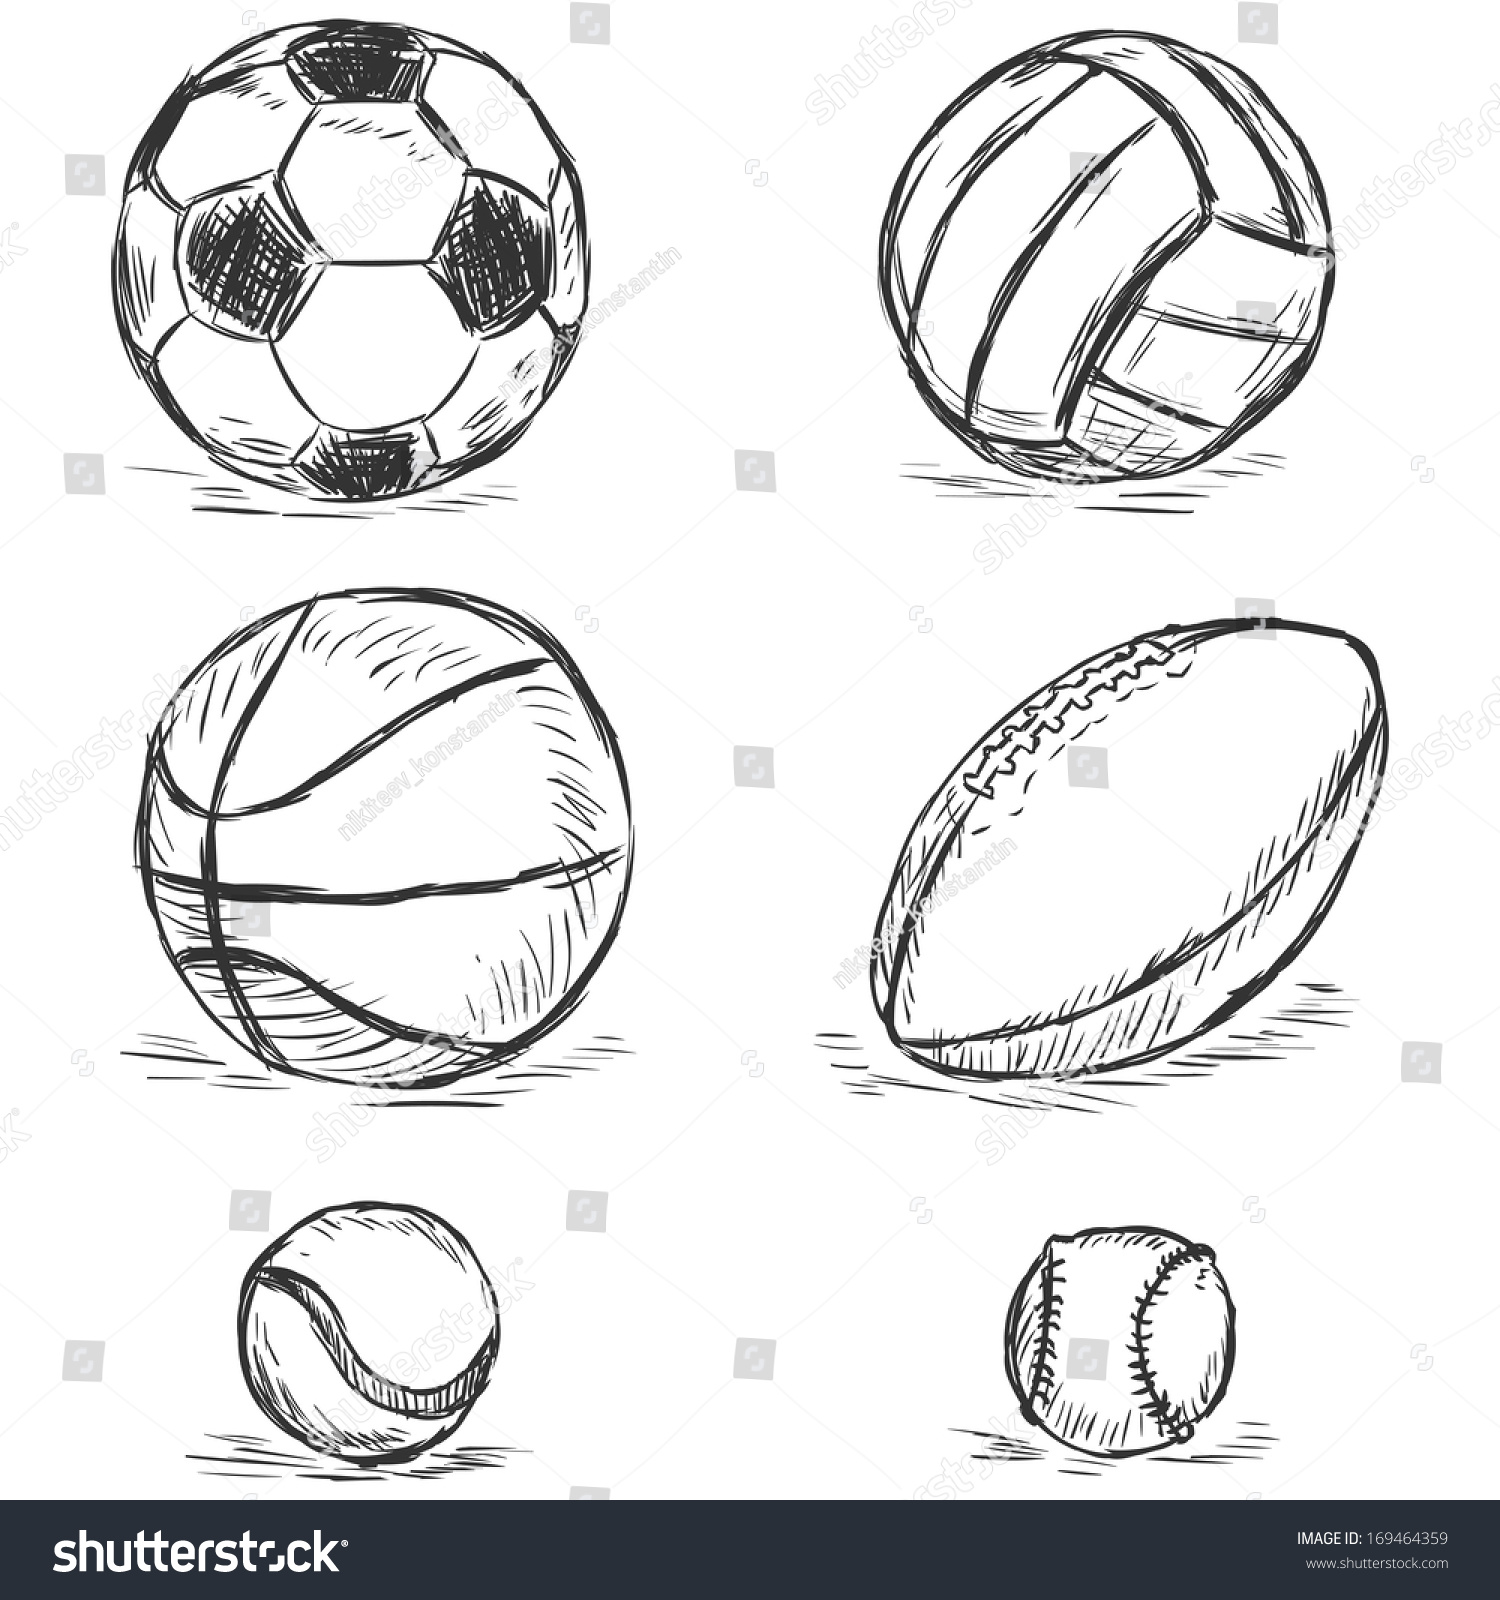 how to draw a afl ball